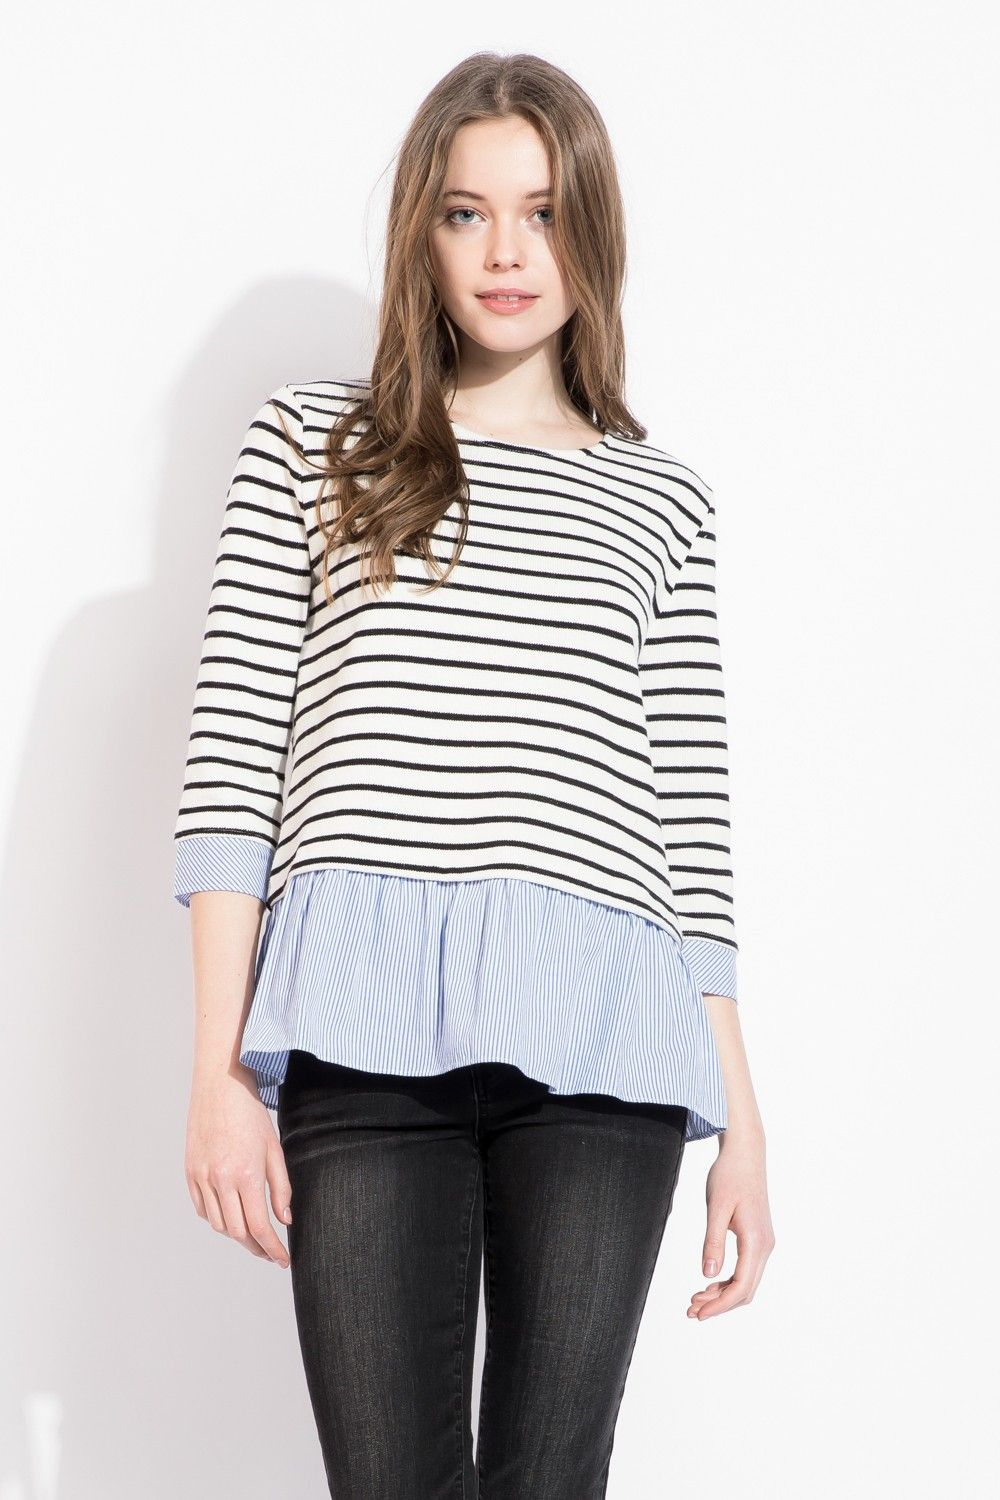 bd85c38748d Classic black and white stripes with a light blue peplum accent makes this  blouse so easy to wear! Great casual chic top for layering.